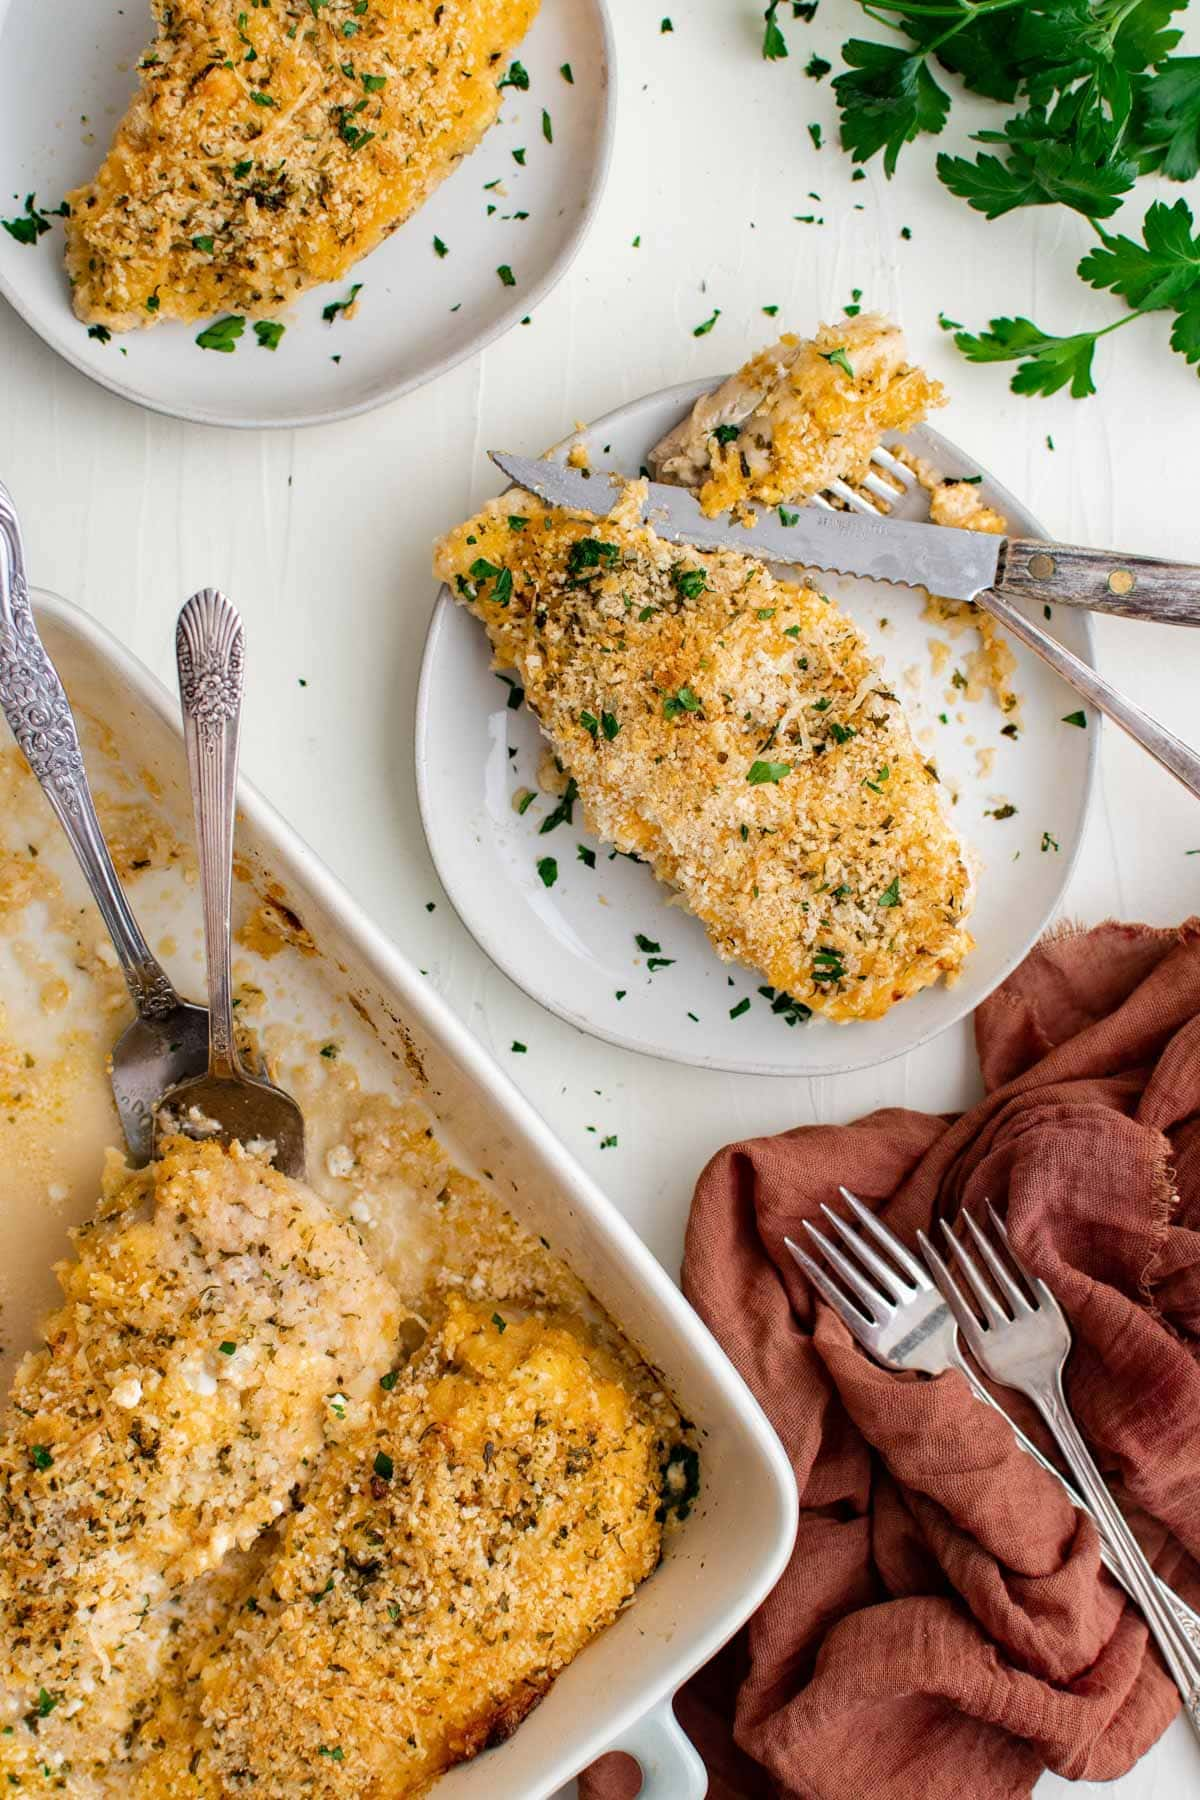 baking dish, chicken breasts with breadcrumb topping, pink napkin, forks, parsley, white plates